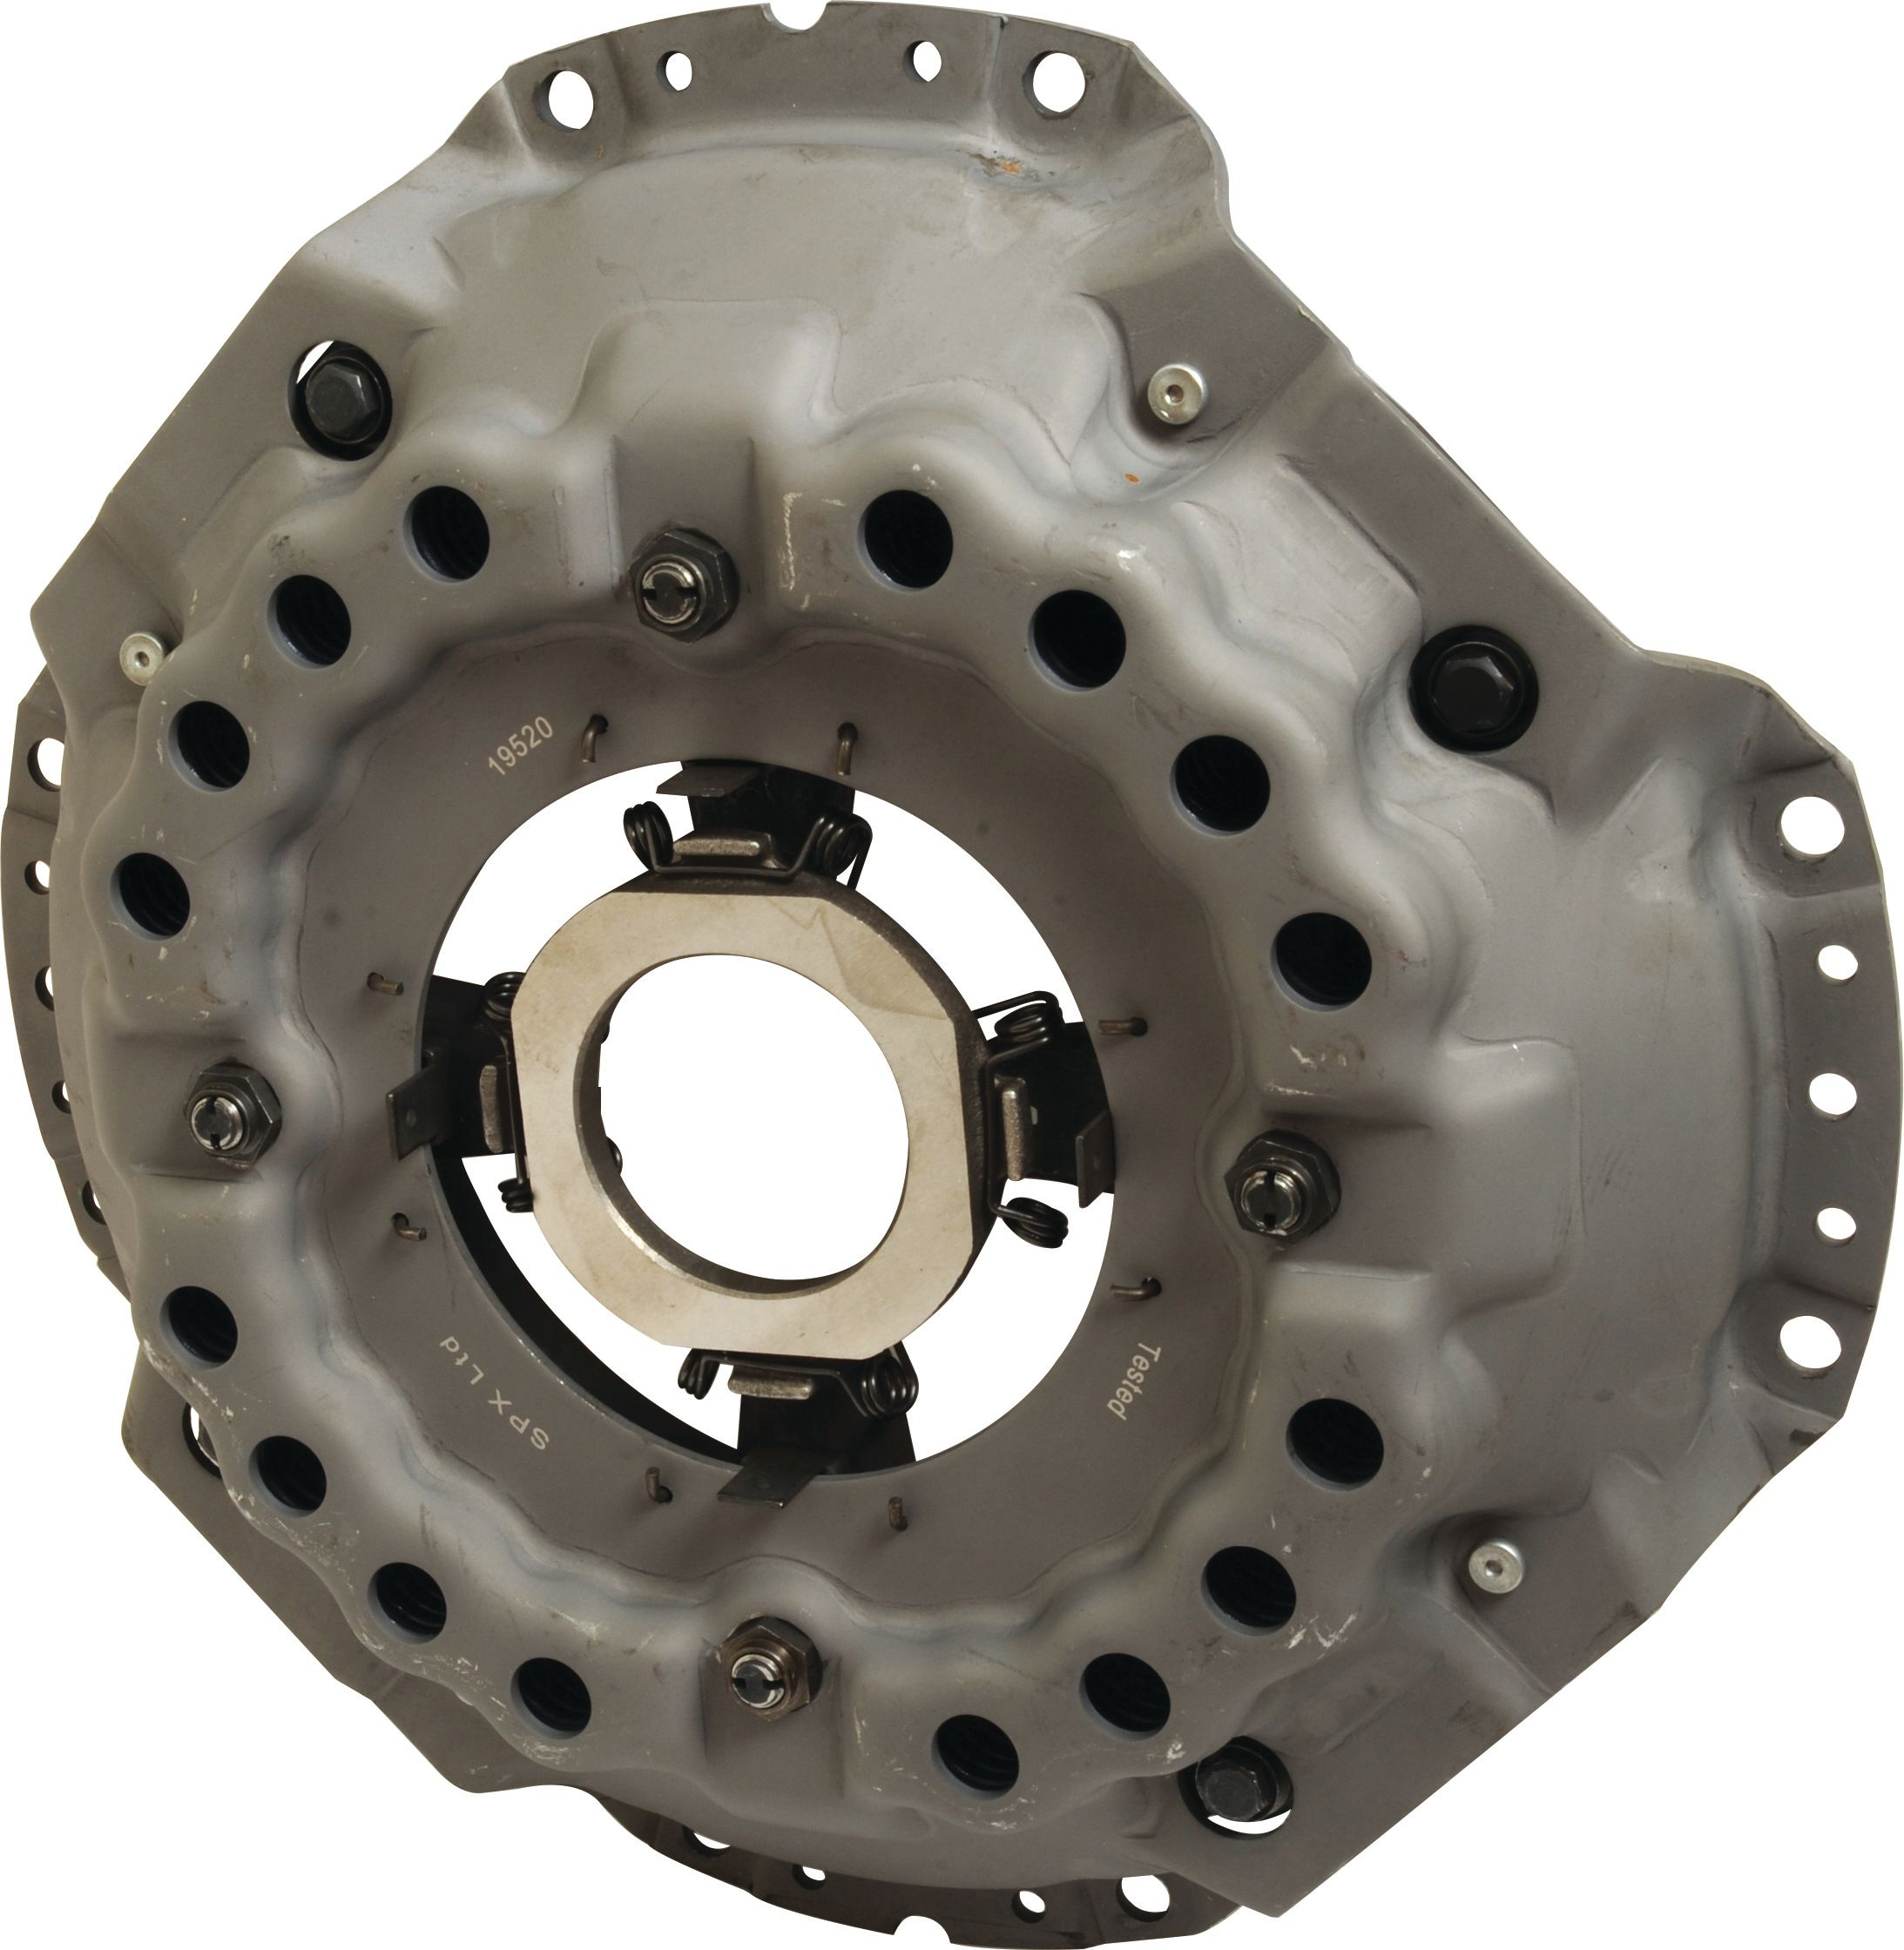 FORD NEW HOLLAND CLUTCH ASSEMBLY